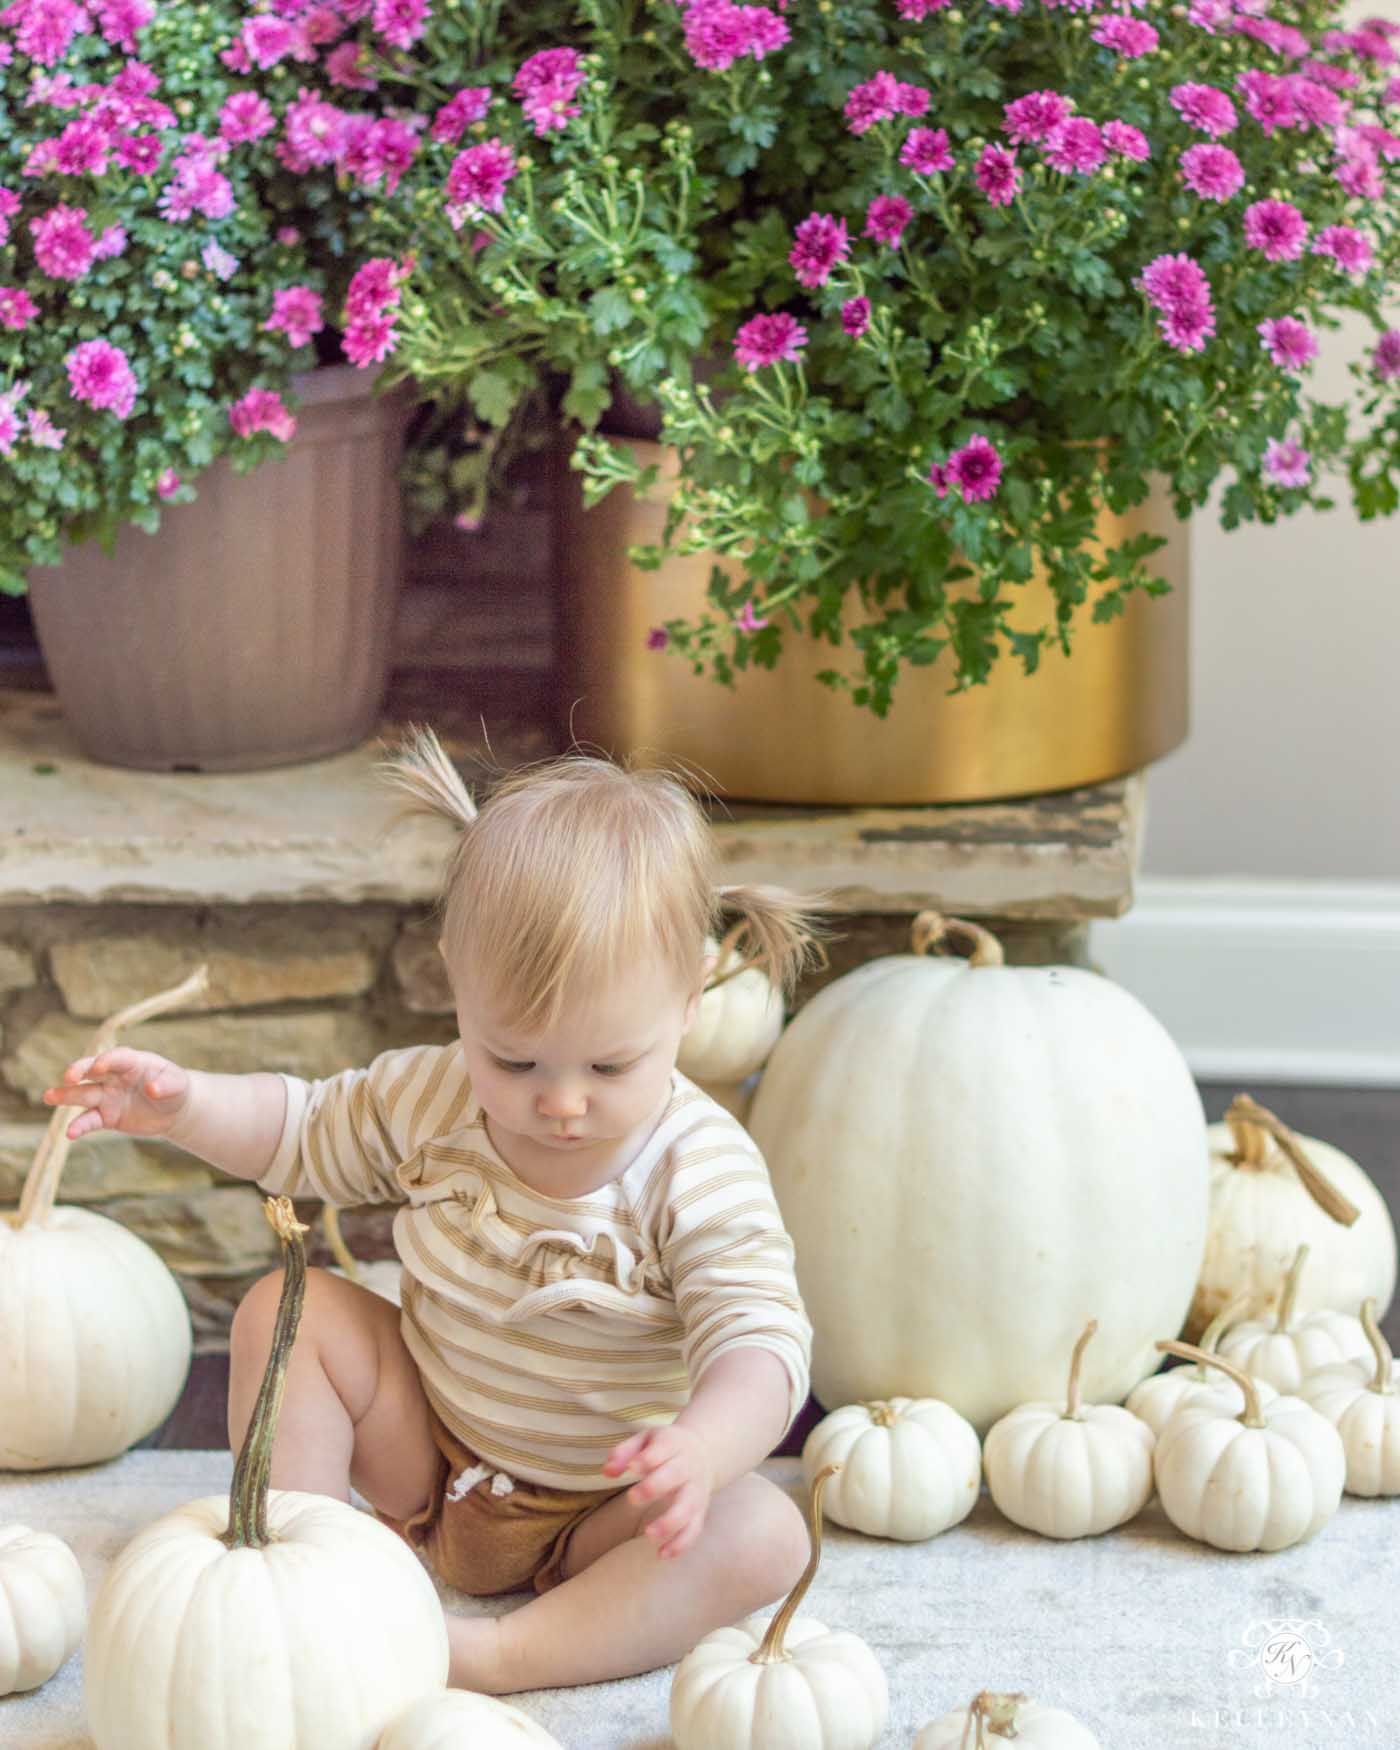 Fall Fireplace Decorating Ideas with White Pumpkins and Purple Mums